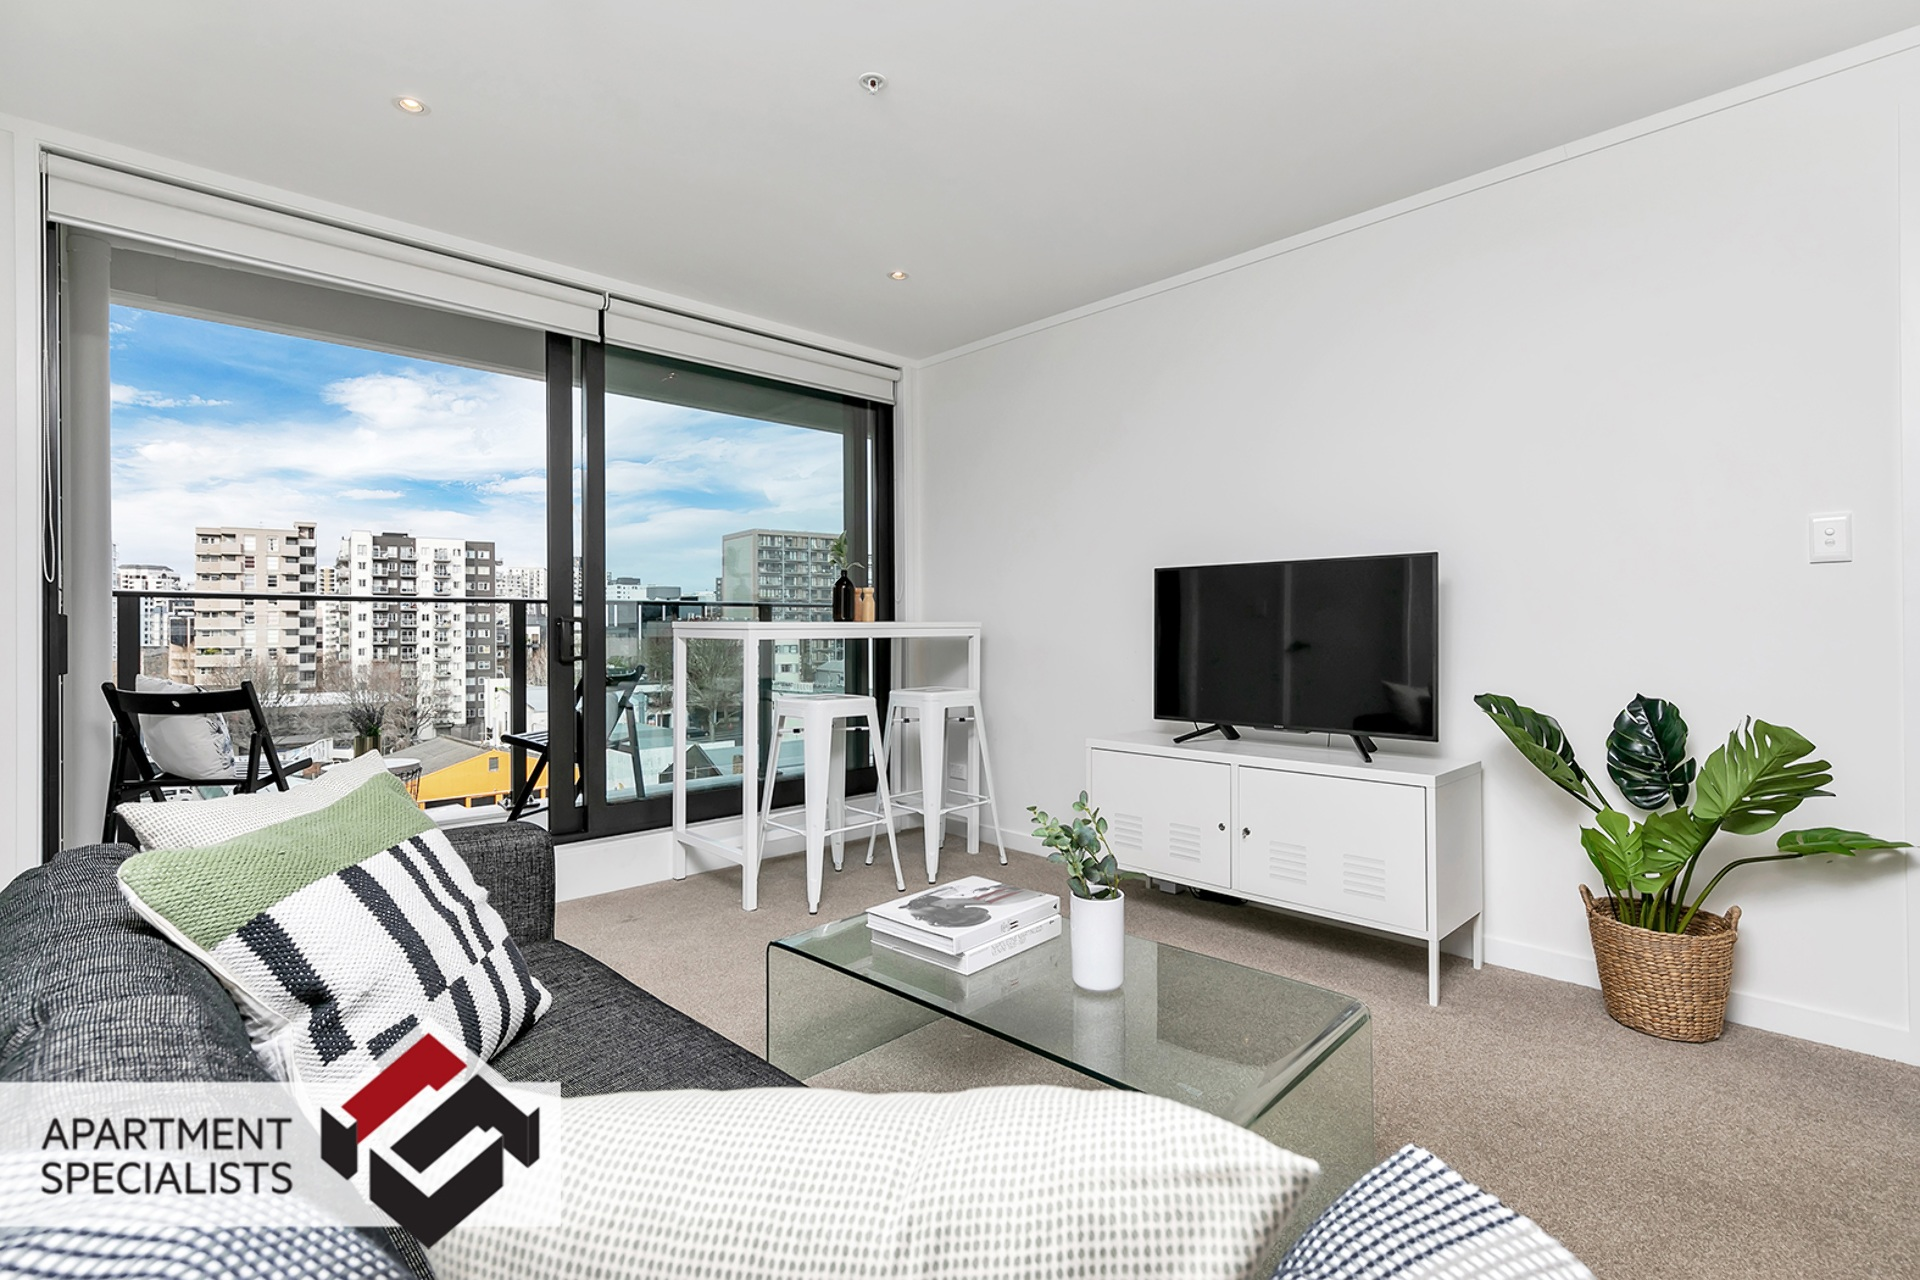 Hero | 147 Nelson Street, City Centre | Apartment Specialists